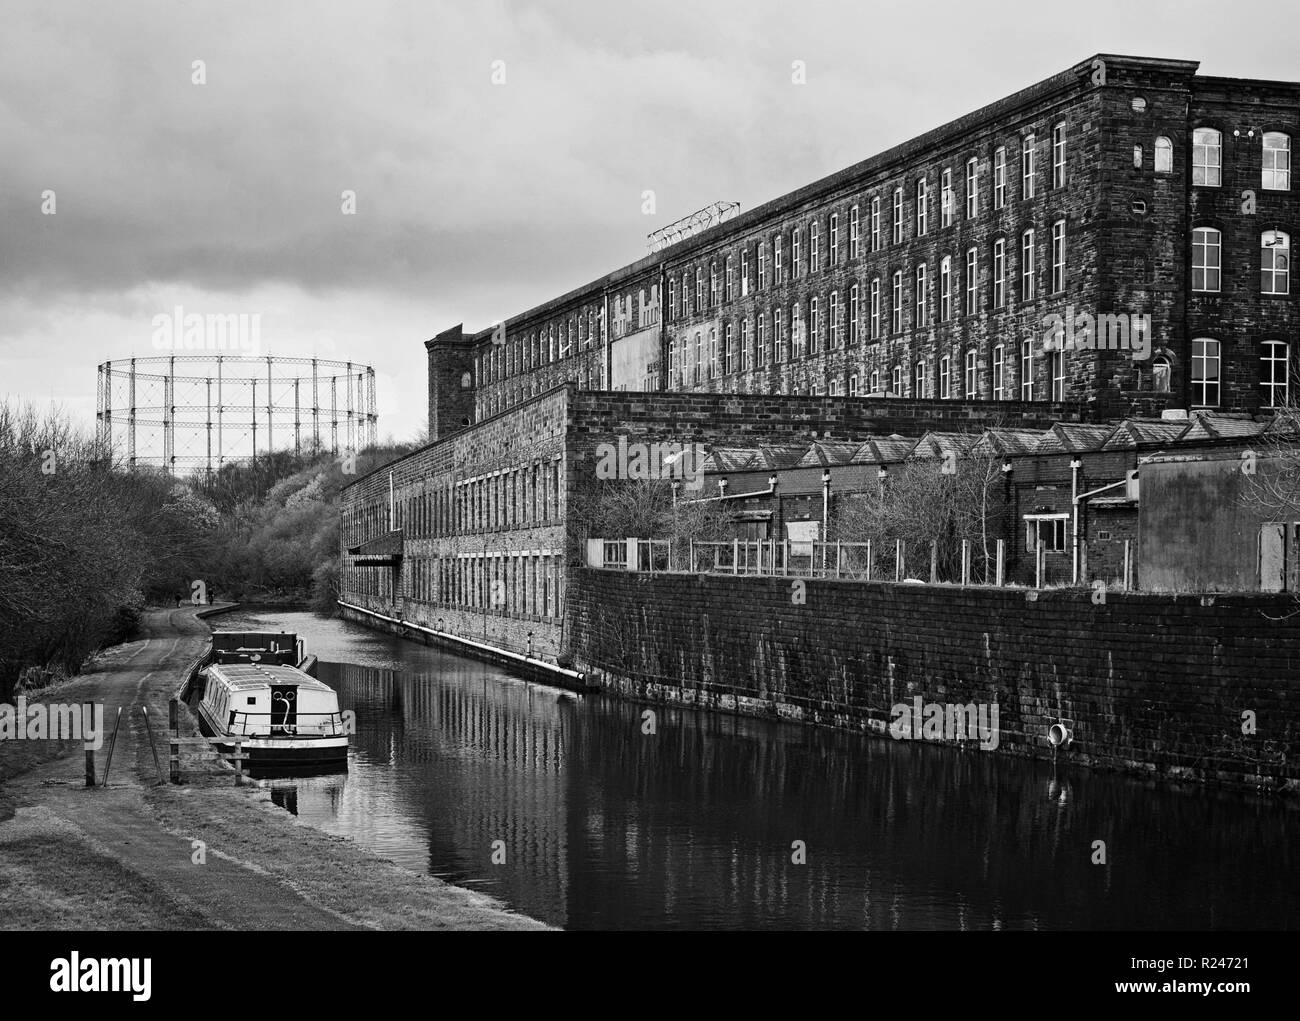 A traditional industrial landscape at Brierfield, Lancashire - Stock Image